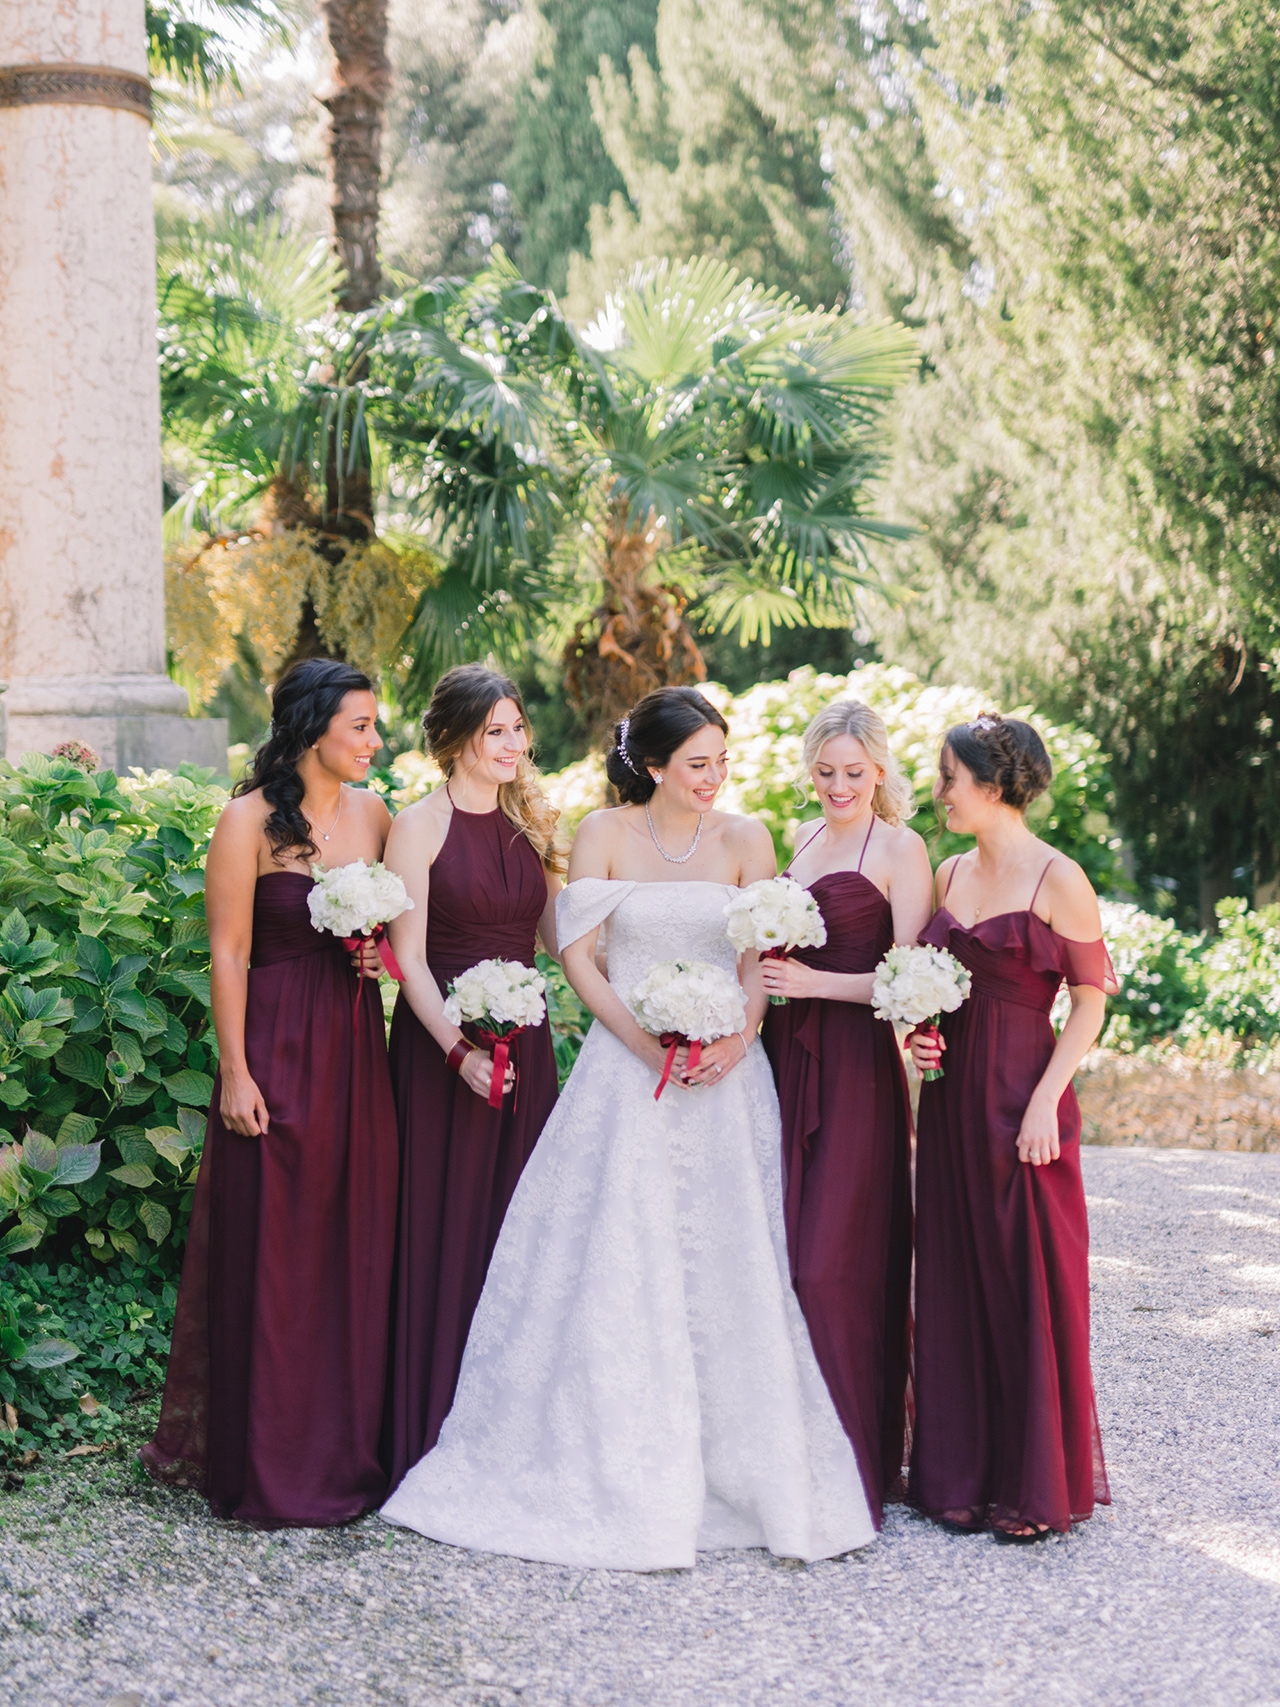 wedding bride with bridesmaids with burgundy dresses